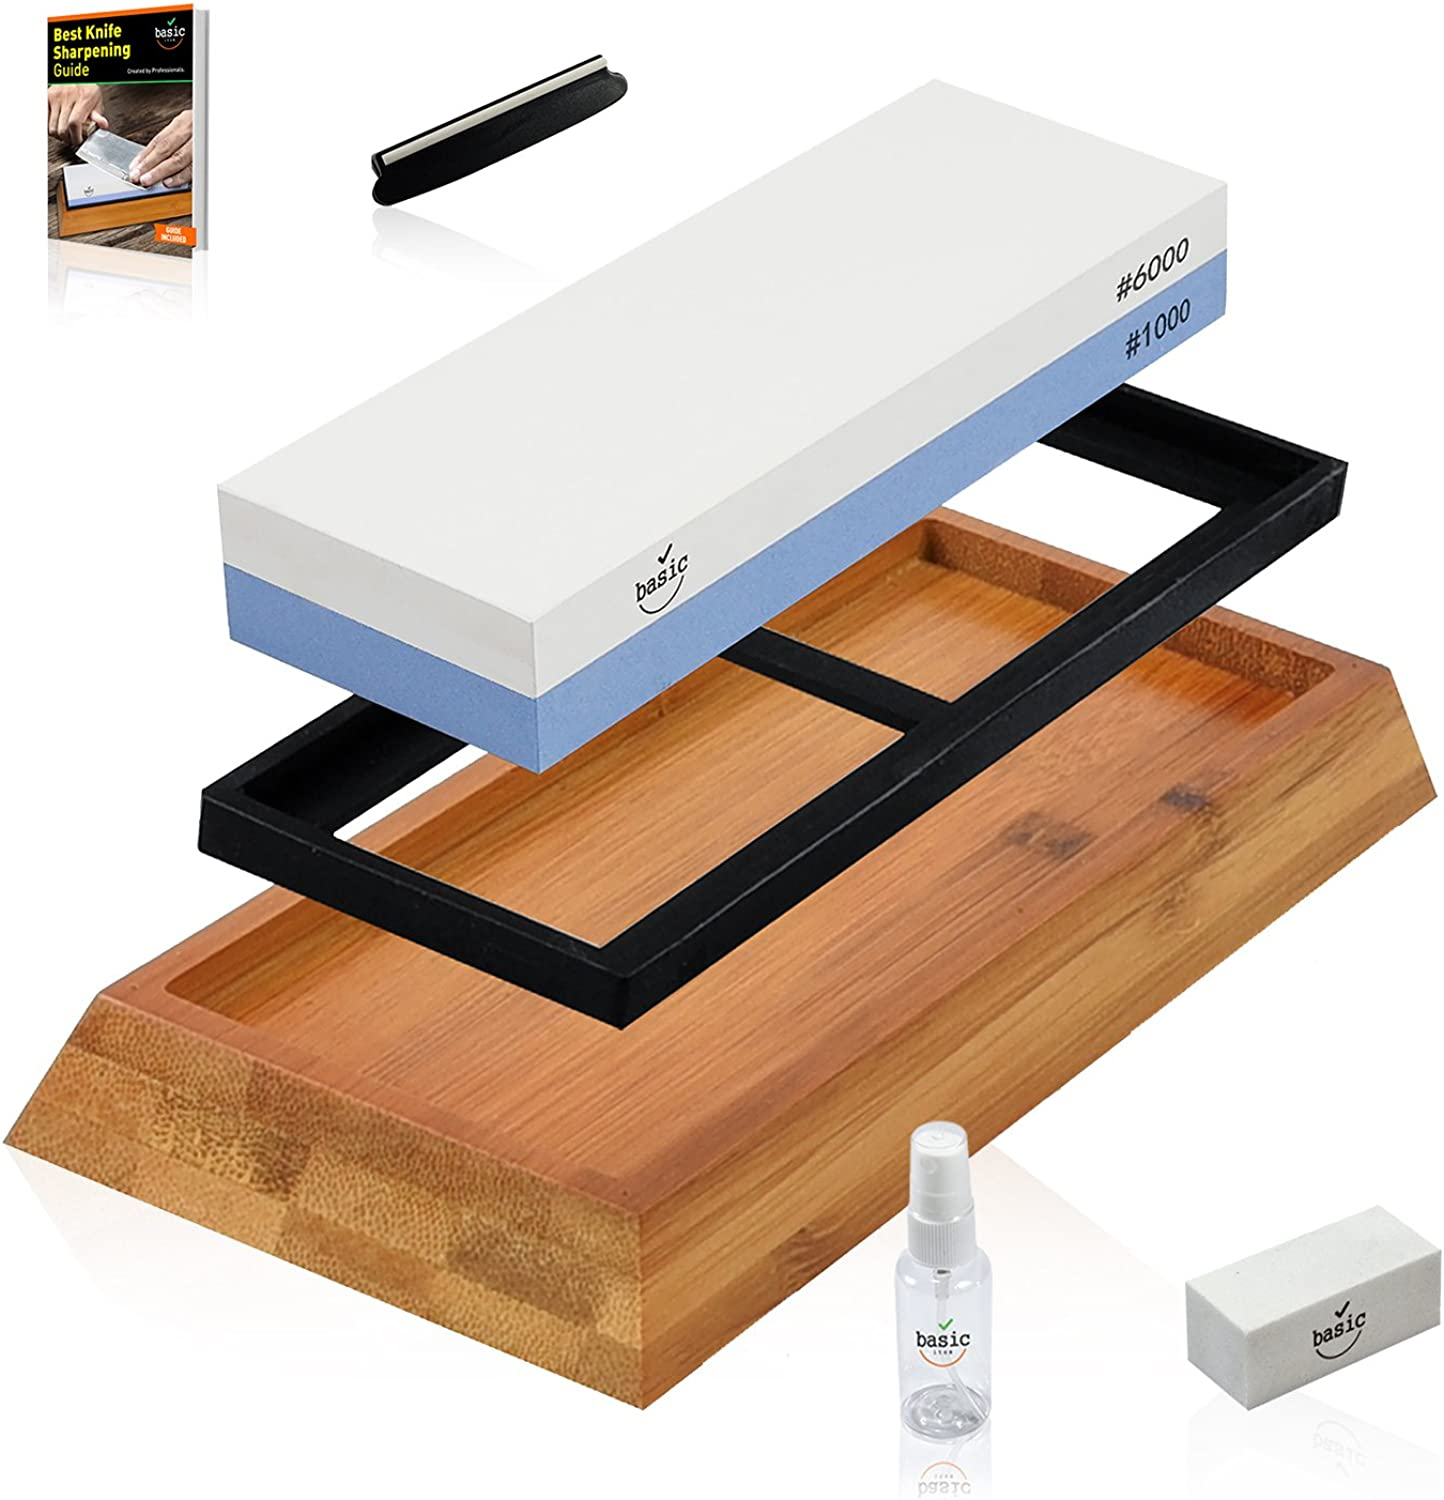 WarriorStone Whetstone Sharpening Stone – Sharpen Everything Quickly, Easily & Safely w  Powerful Professional Knife Sharpening Kit, Non-Slip Silicone Lined Bamboo Base, Angle Guide, Flattening Stone